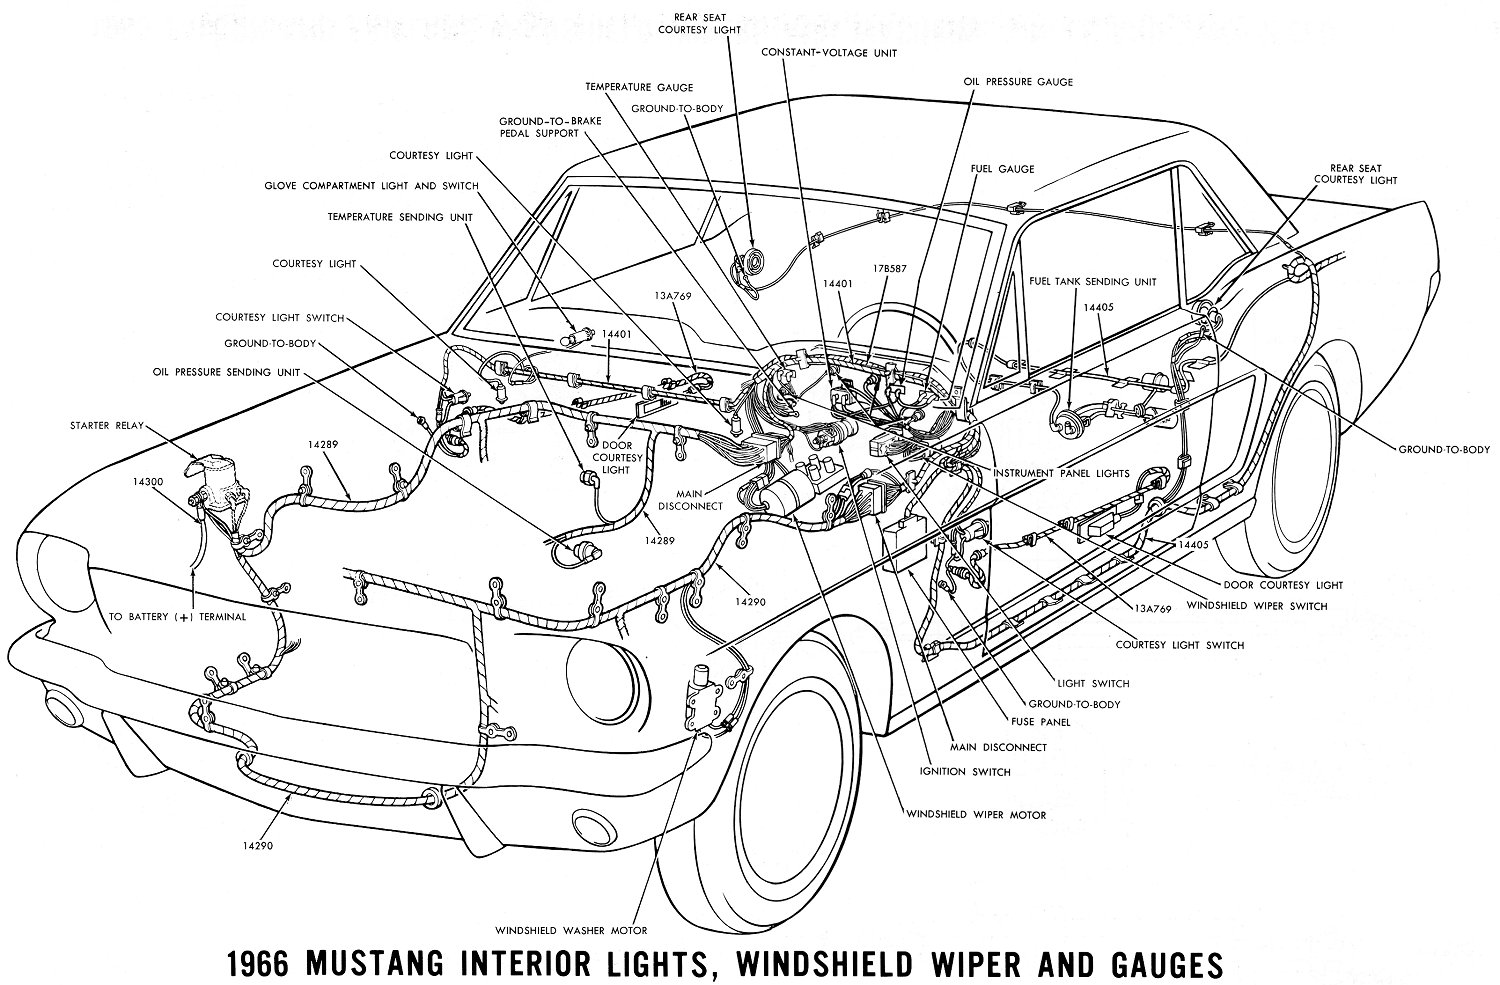 1966 mustang console wiring all wiring diagram 1966 Mustang Manual Transmission Console